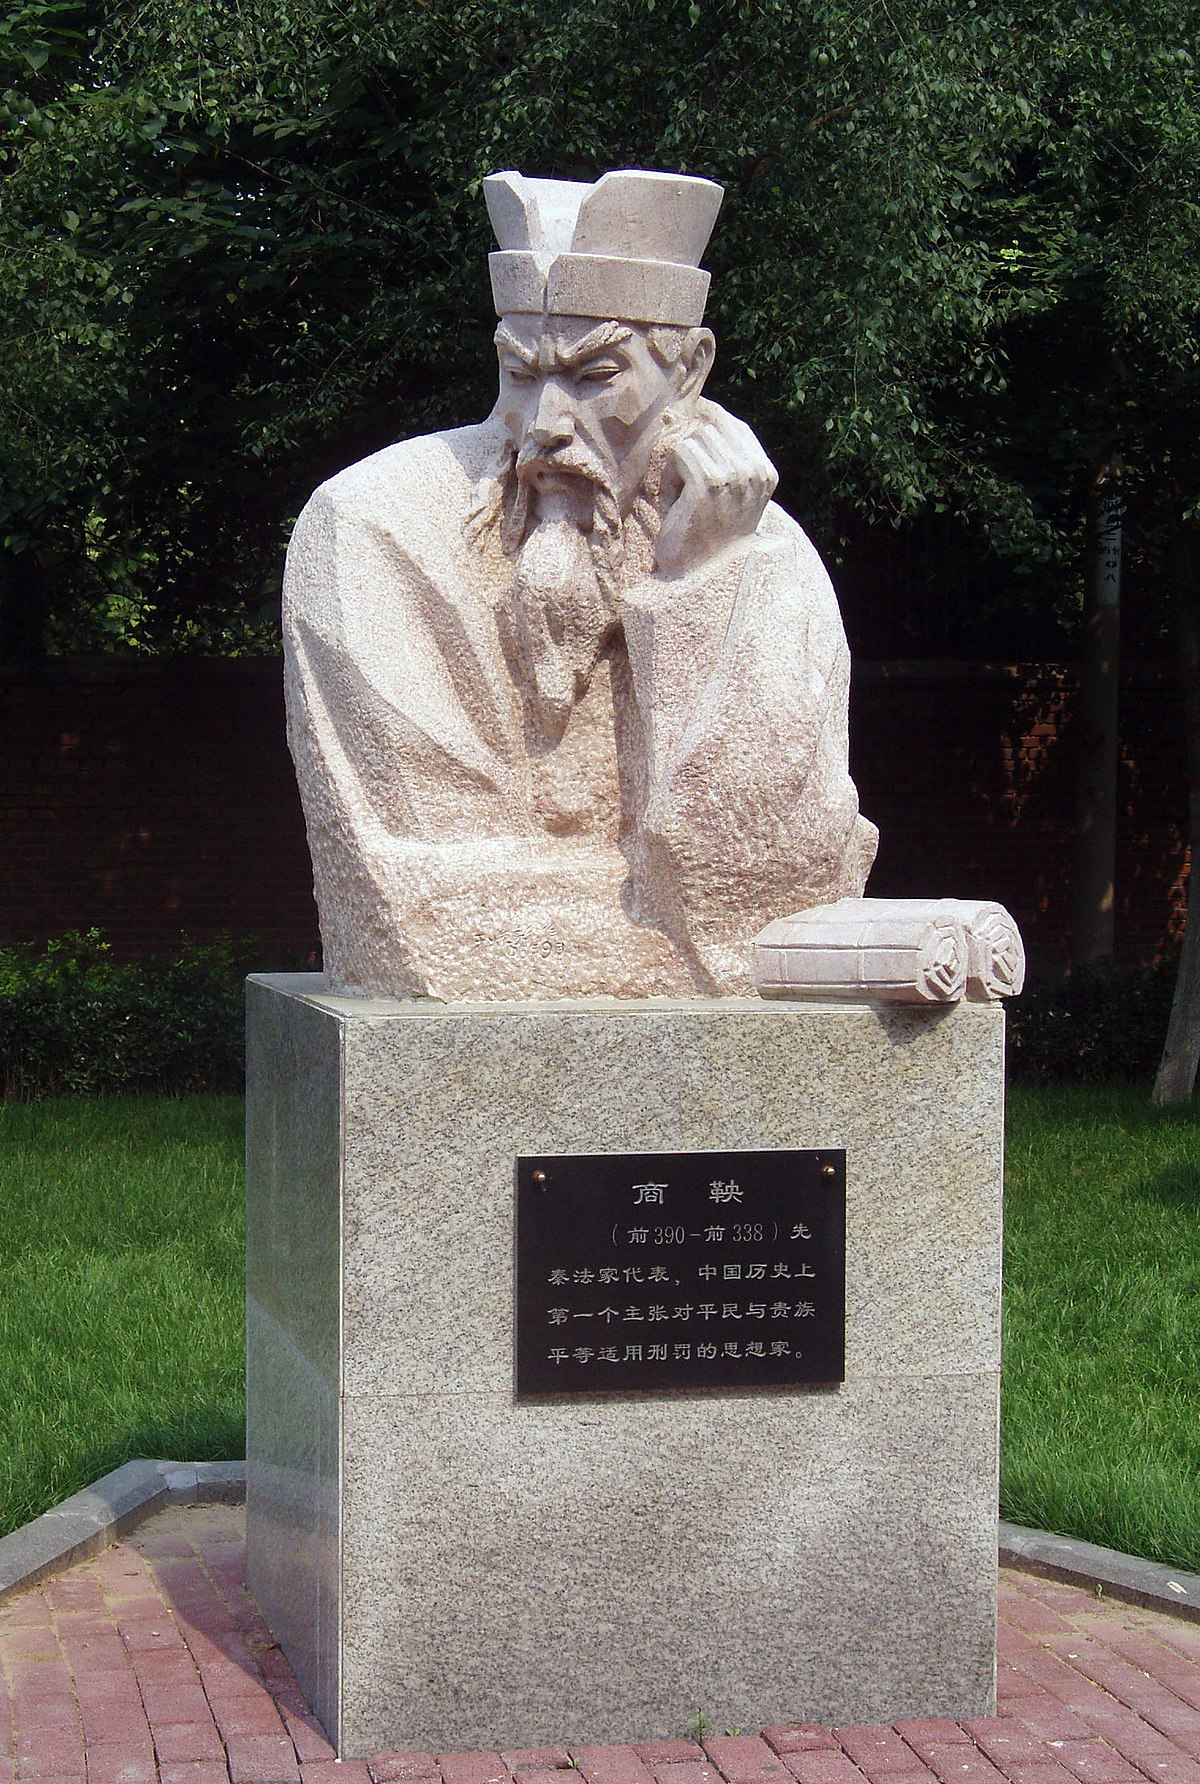 philosophies confucianism and legalism qin dynasty Several of these philosophic schools have had lasting impact on chinese civilization and political order, among them, confucianism, legalism, and daoism leading philosophers in the early history of each school, and the texts associated with them, include.